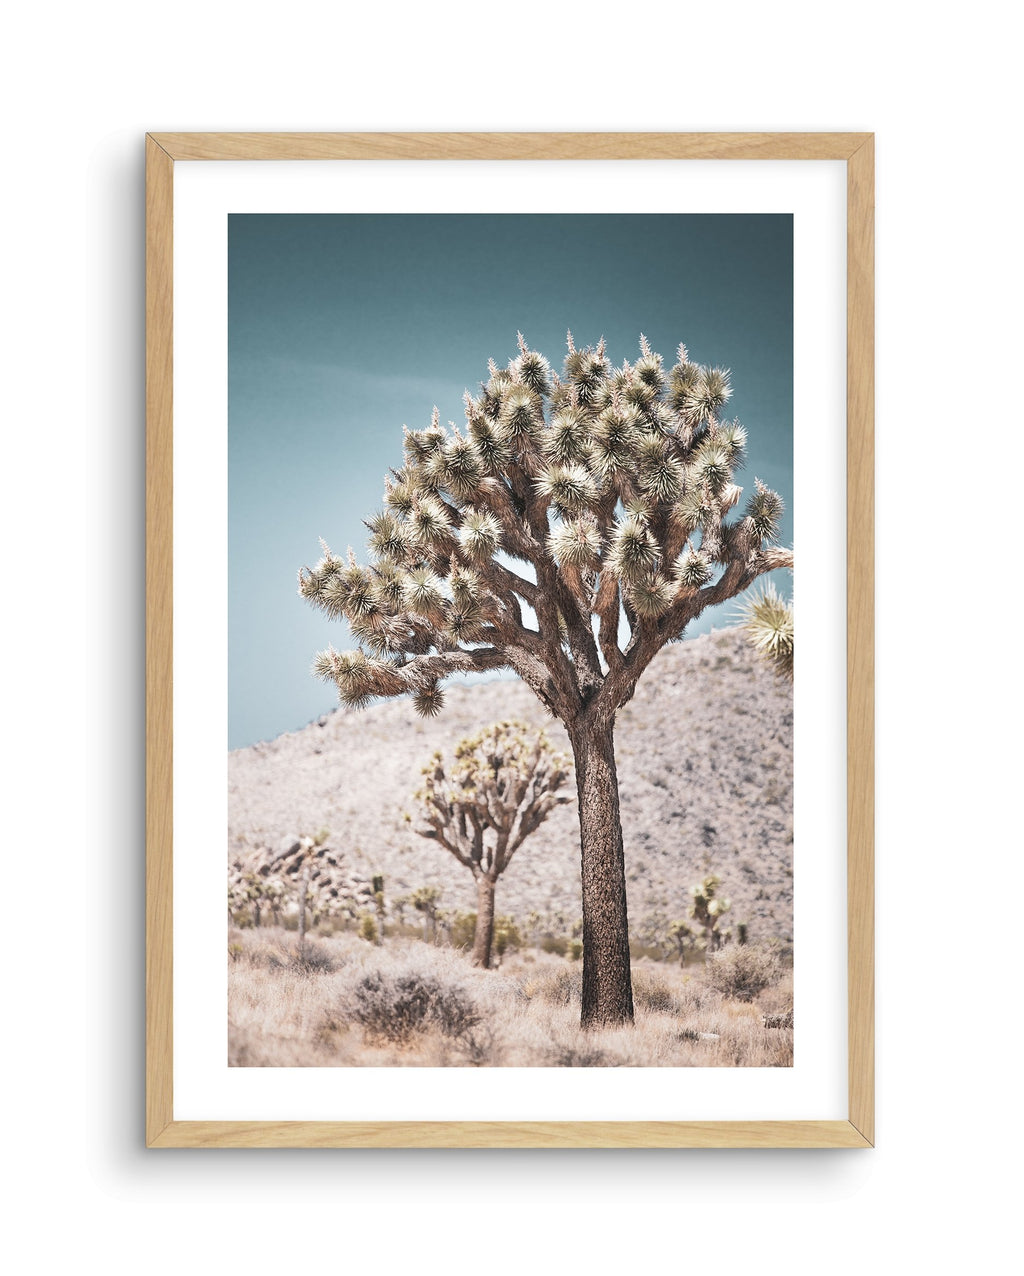 Joshua Tree | SOFT | NO 3 - Olive et Oriel | Shop Art Prints & Posters Online